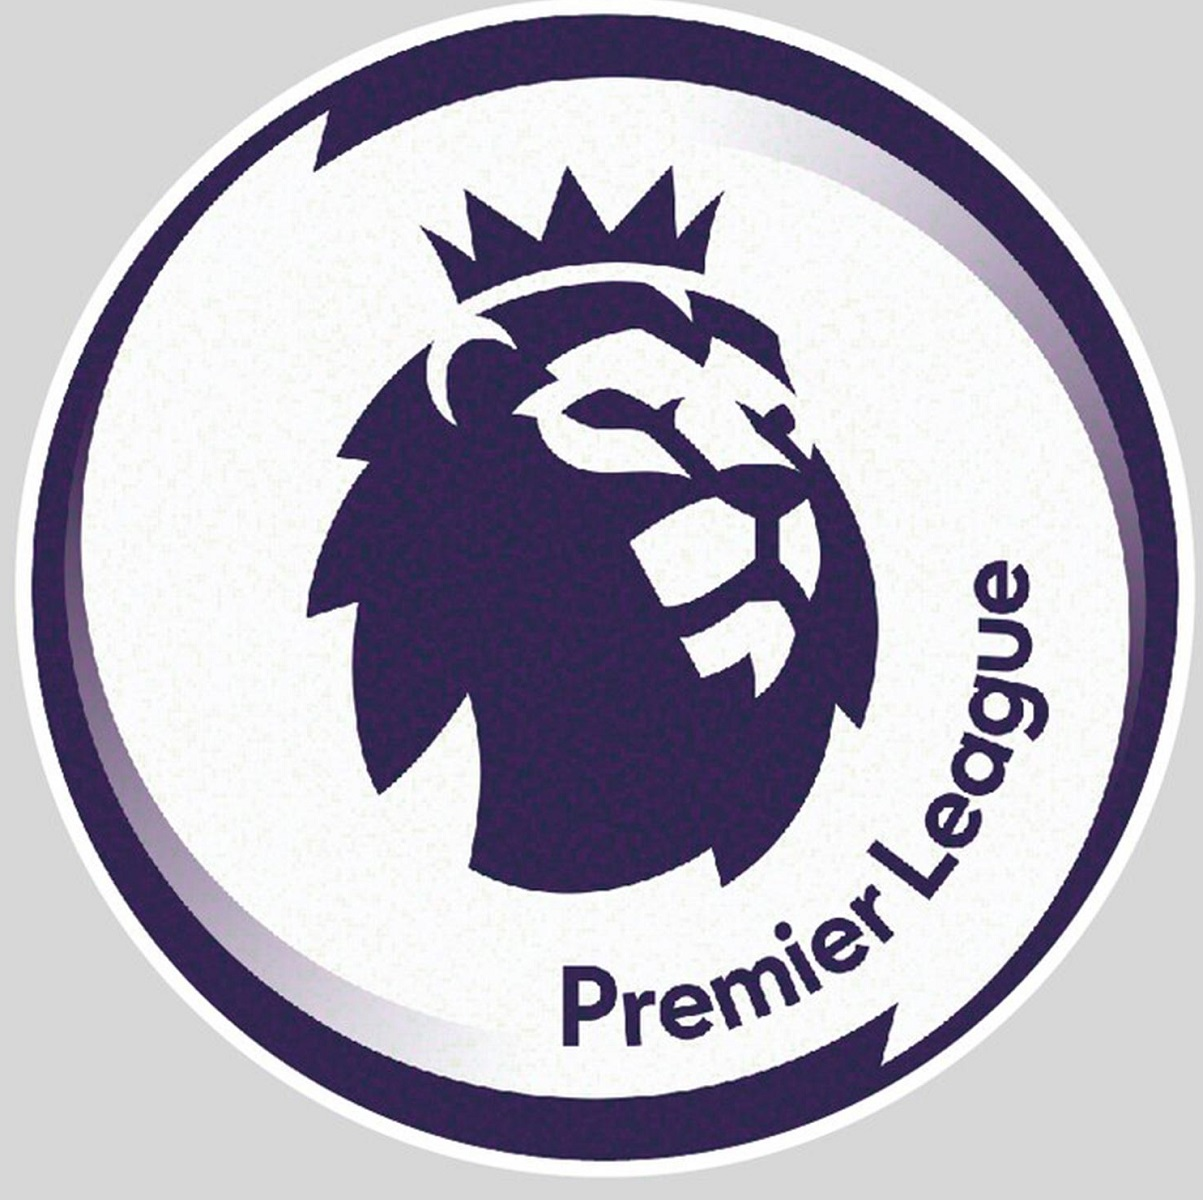 New EPL badge 19/20